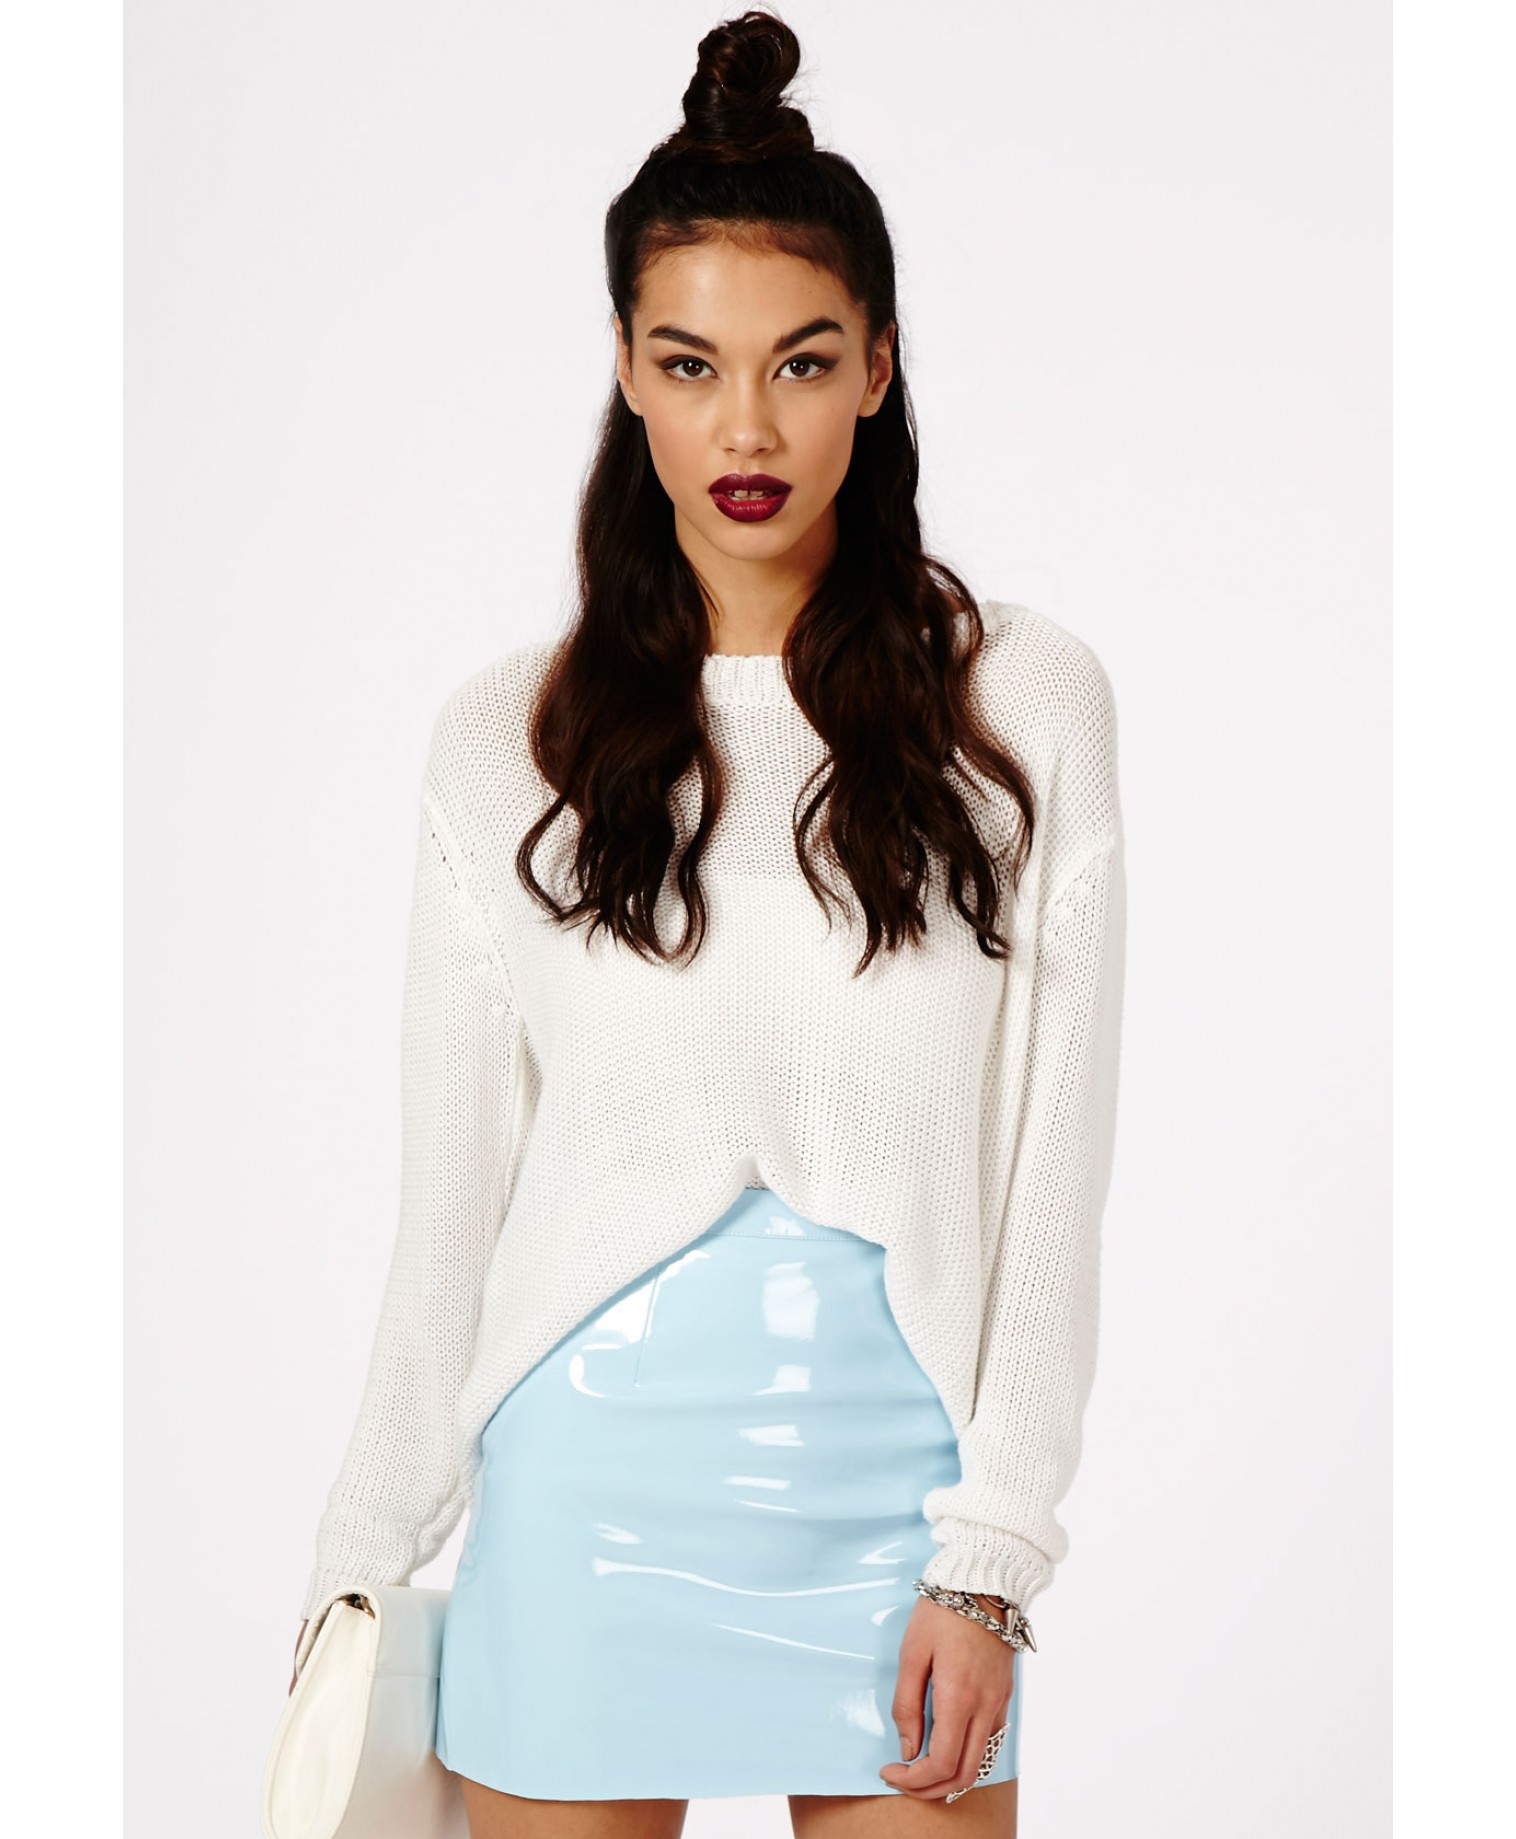 Missguided Nagsia Pvc Mini Skirt In Baby Blue in Blue | Lyst